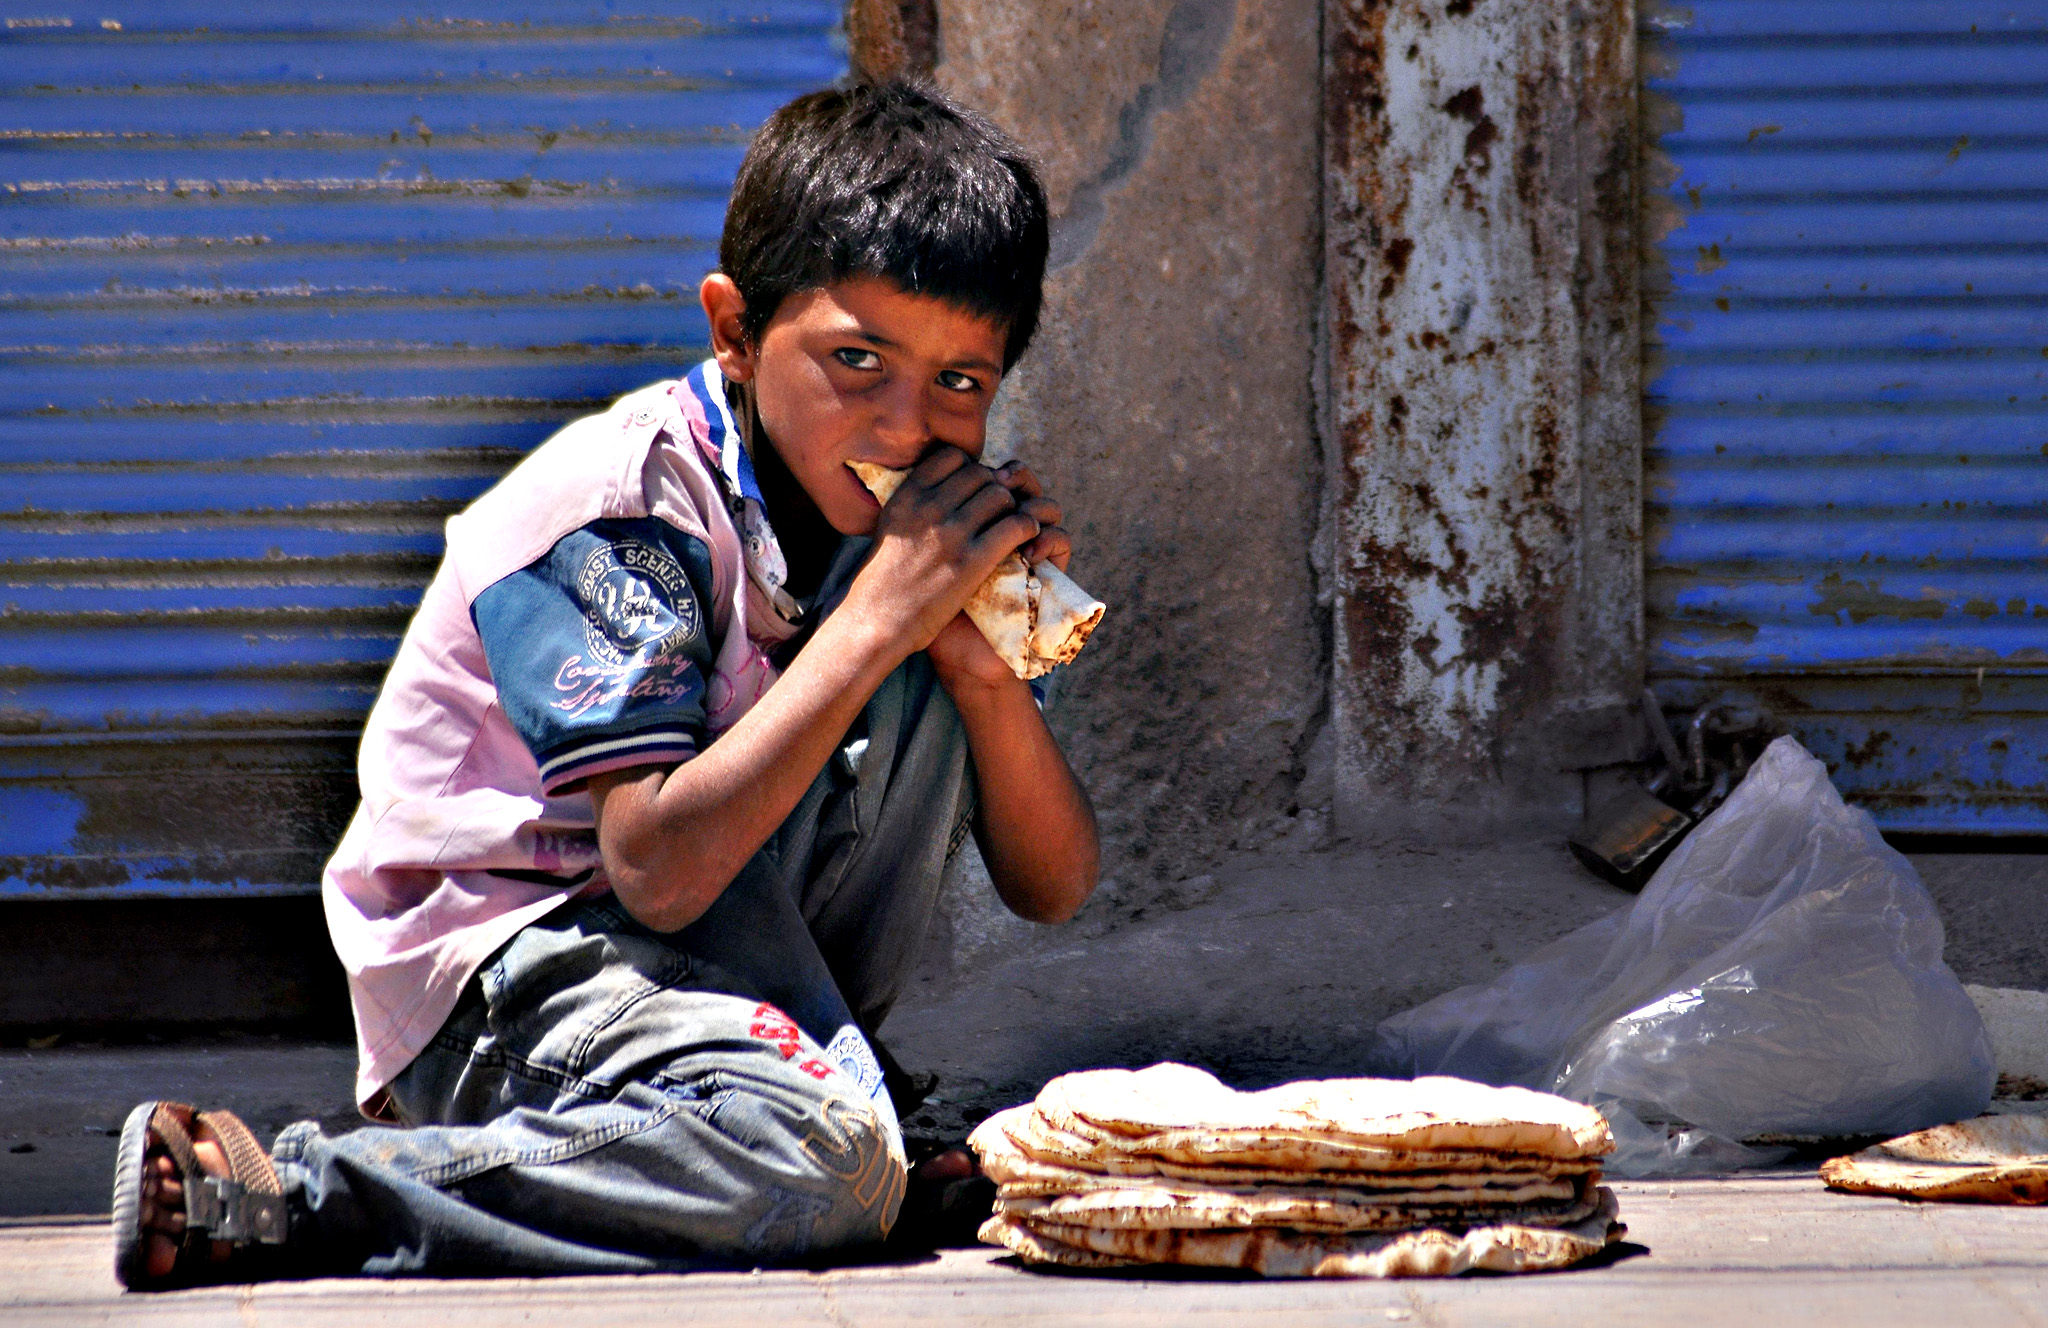 A Syrian boy eats bread as he sits on a street in the town of Tal Abyad, on the border with Turkey, on Friday, some ten days after the Kurdish People's Protection Units (YPG) seized the key transit point for Islamic State (IS) group fighters